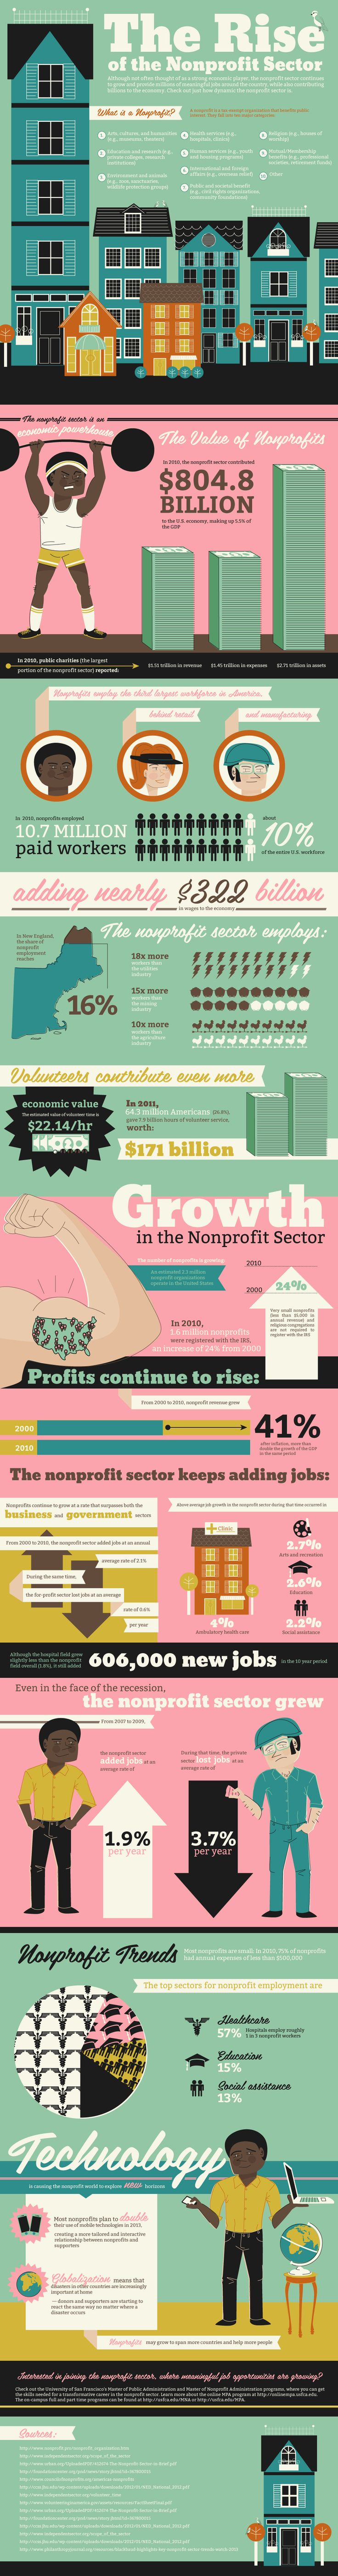 Rise Of The Nonprofit Sector    #Infographic #Economy #NonProfitSector